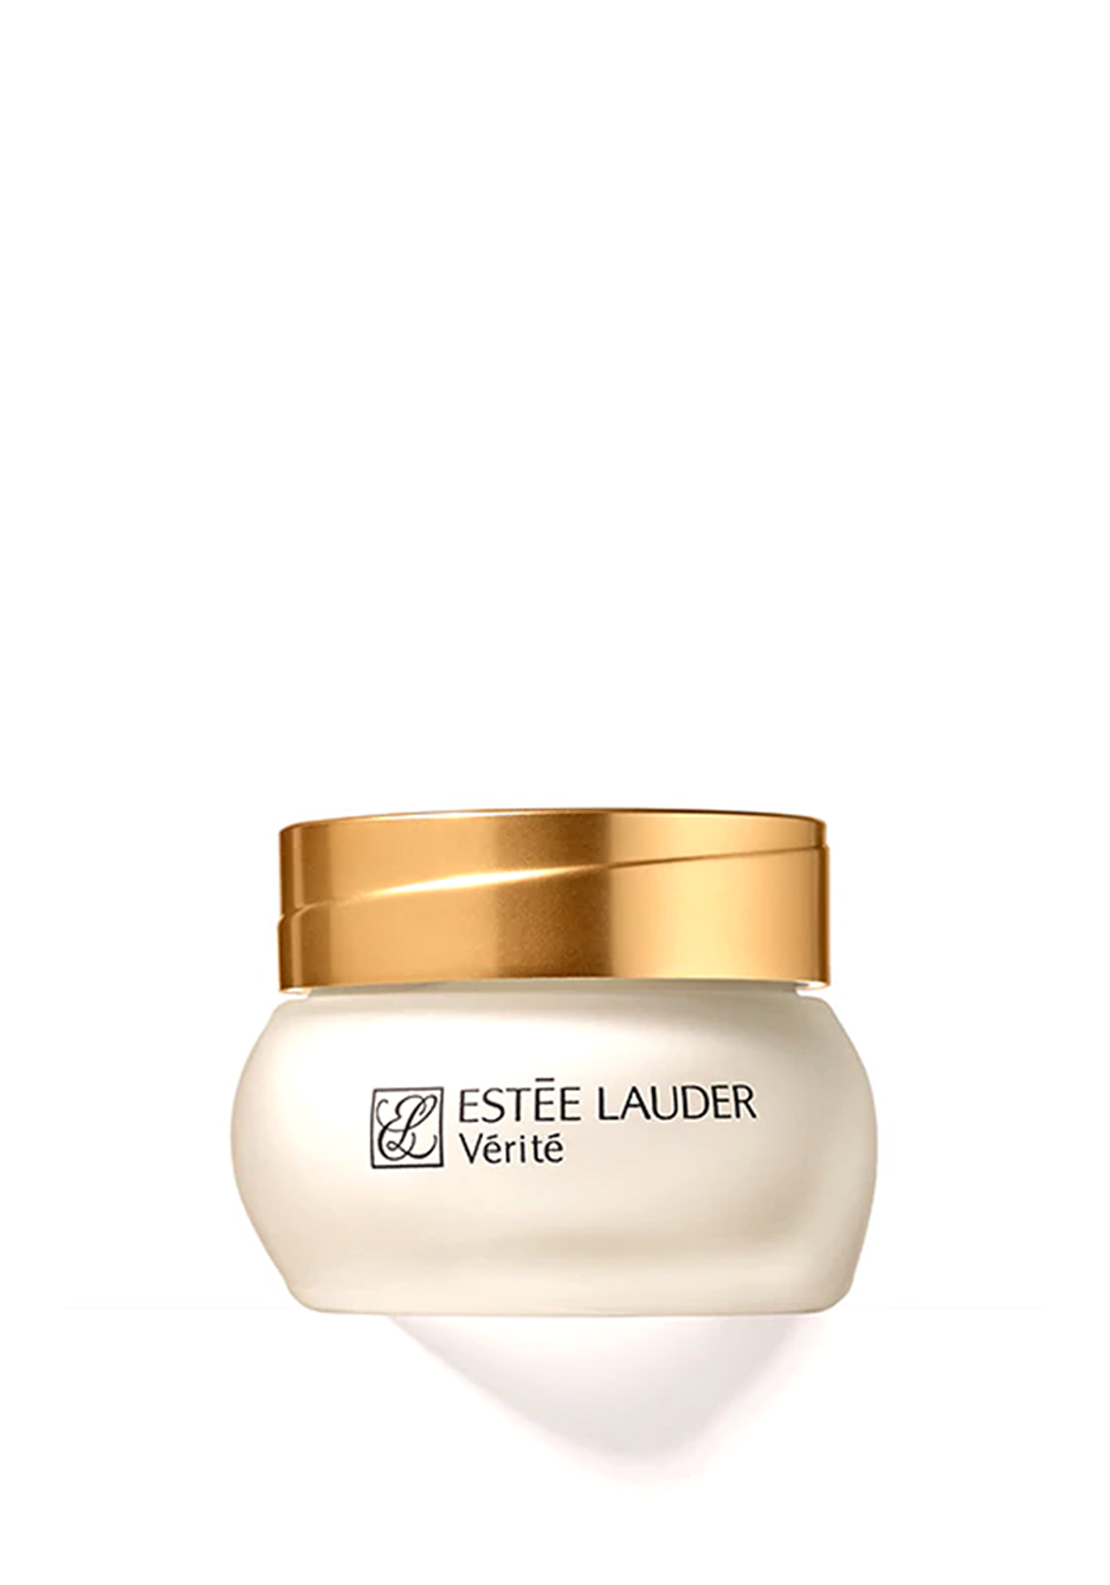 Estee Lauder Verite Moisture Relief Cream, 50ml